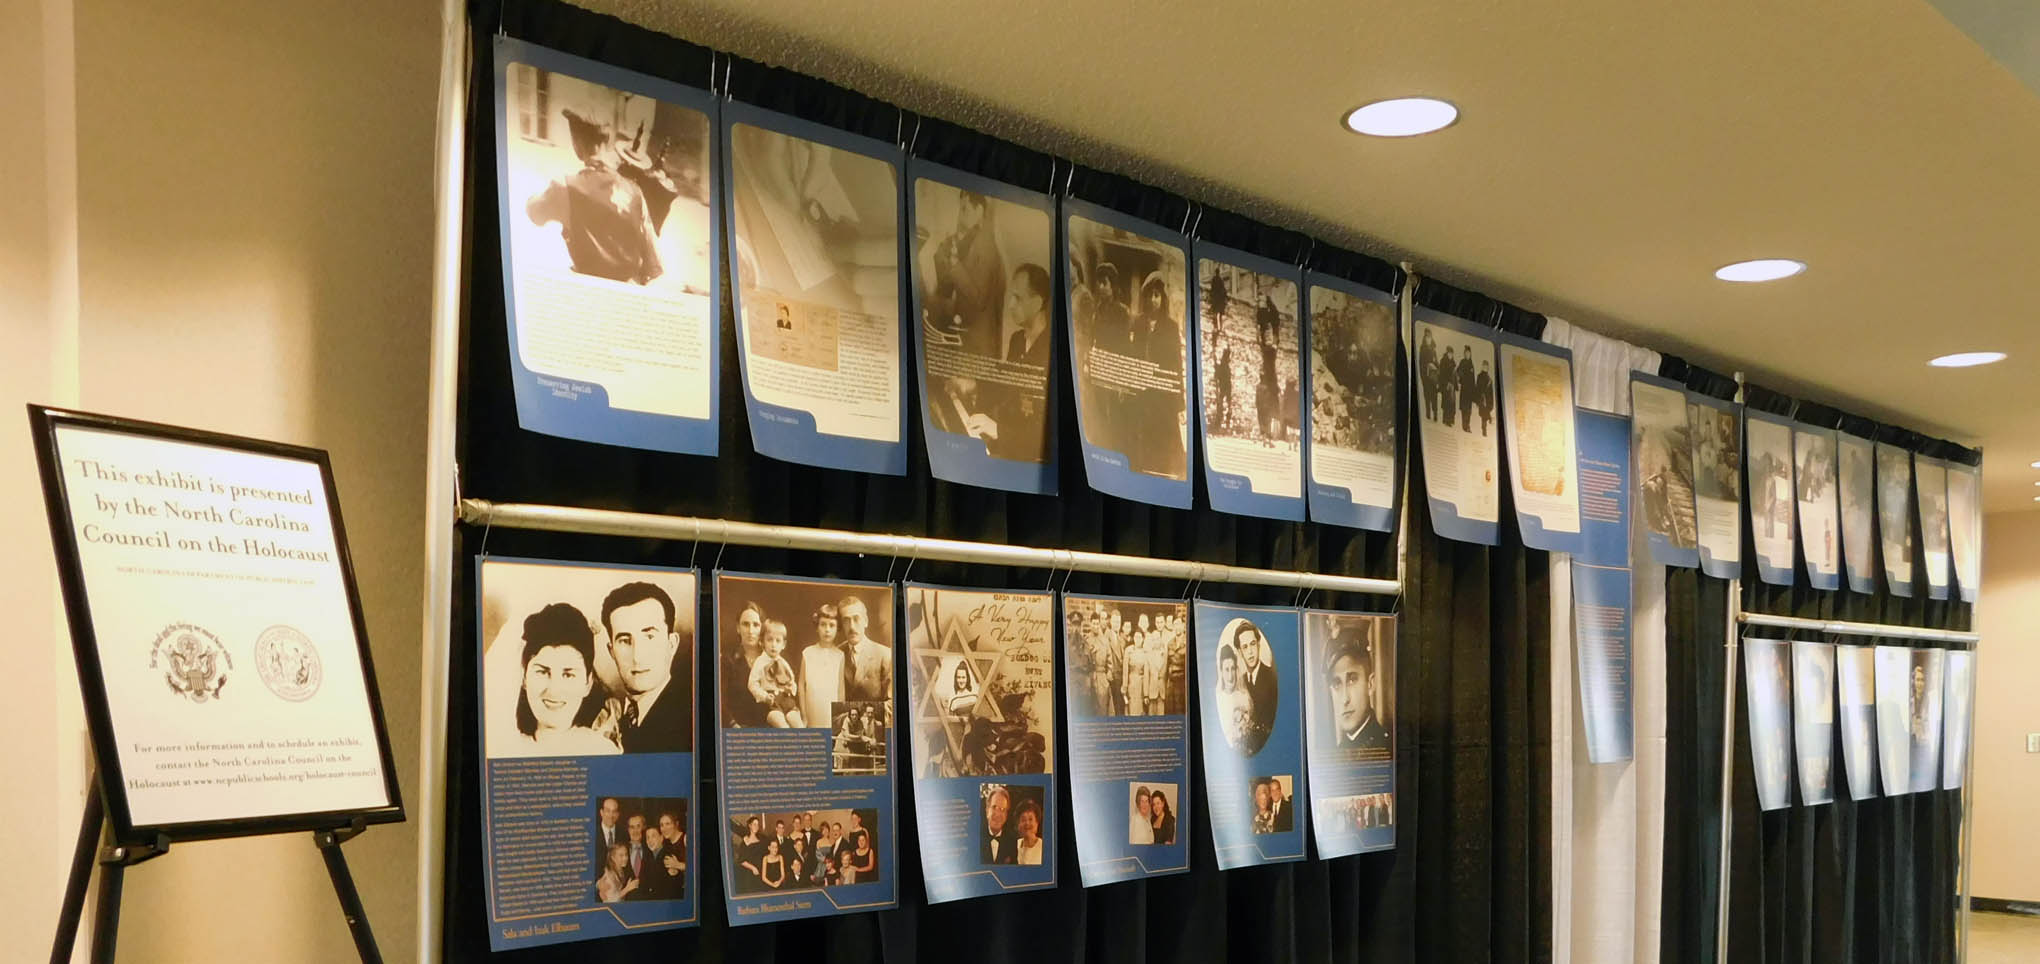 Click to enlarge,  An exhibit presented by the North Carolina Council on the Holocaust was on display at the Fourth Annual Holocaust Remembrance Event presented by Central Carolina Community College on April 21 at the Dennis A. Wicker Civic Center in Sanford.